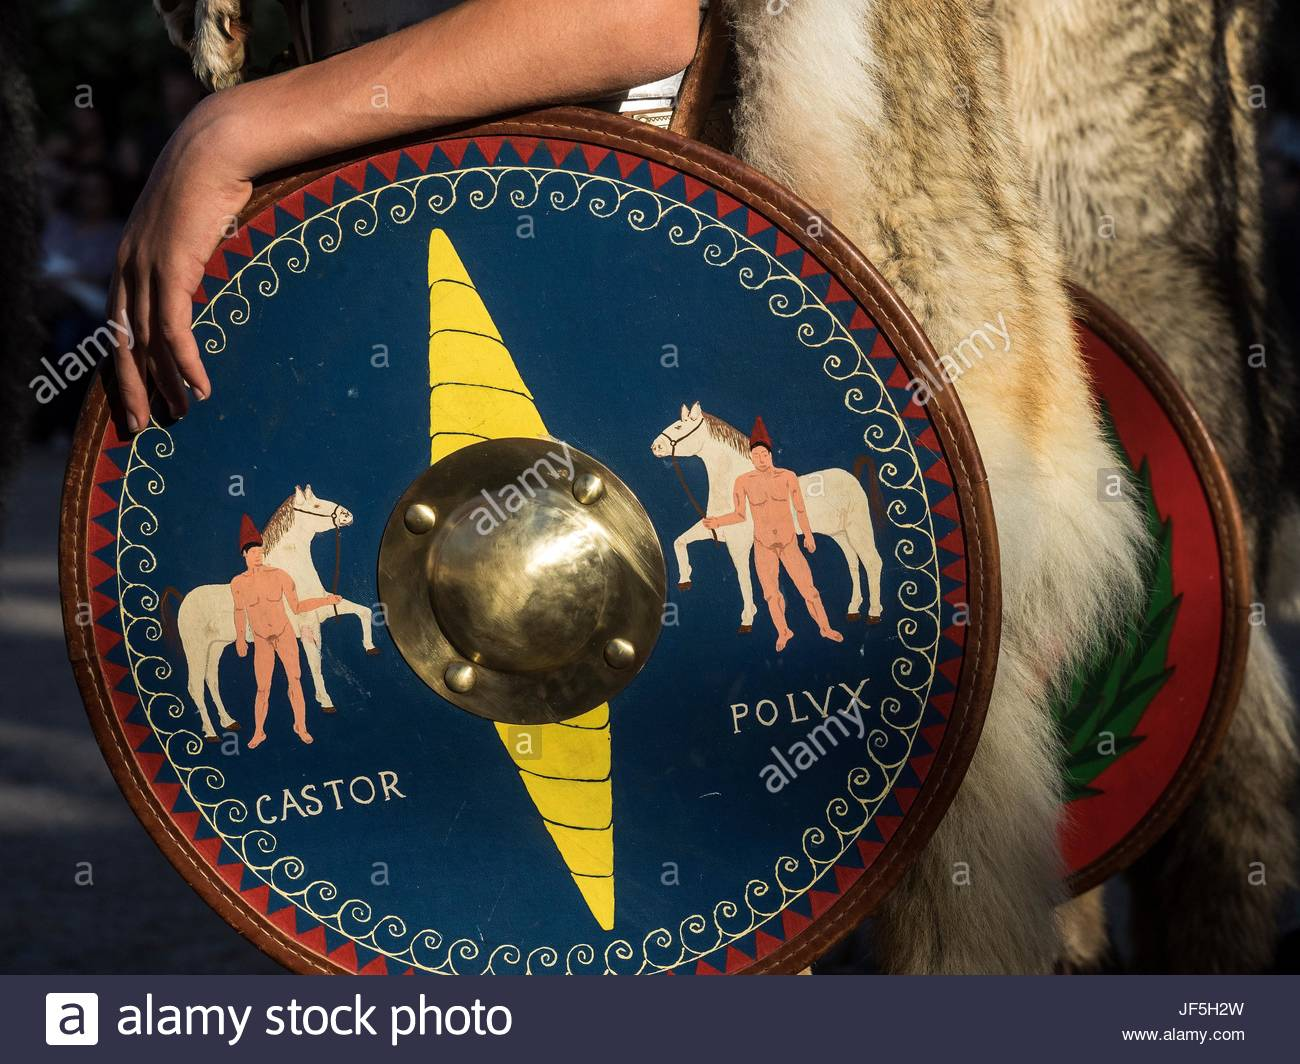 The shield of a participant, dressed in Roman costume during a historical reenactment, - Stock Image